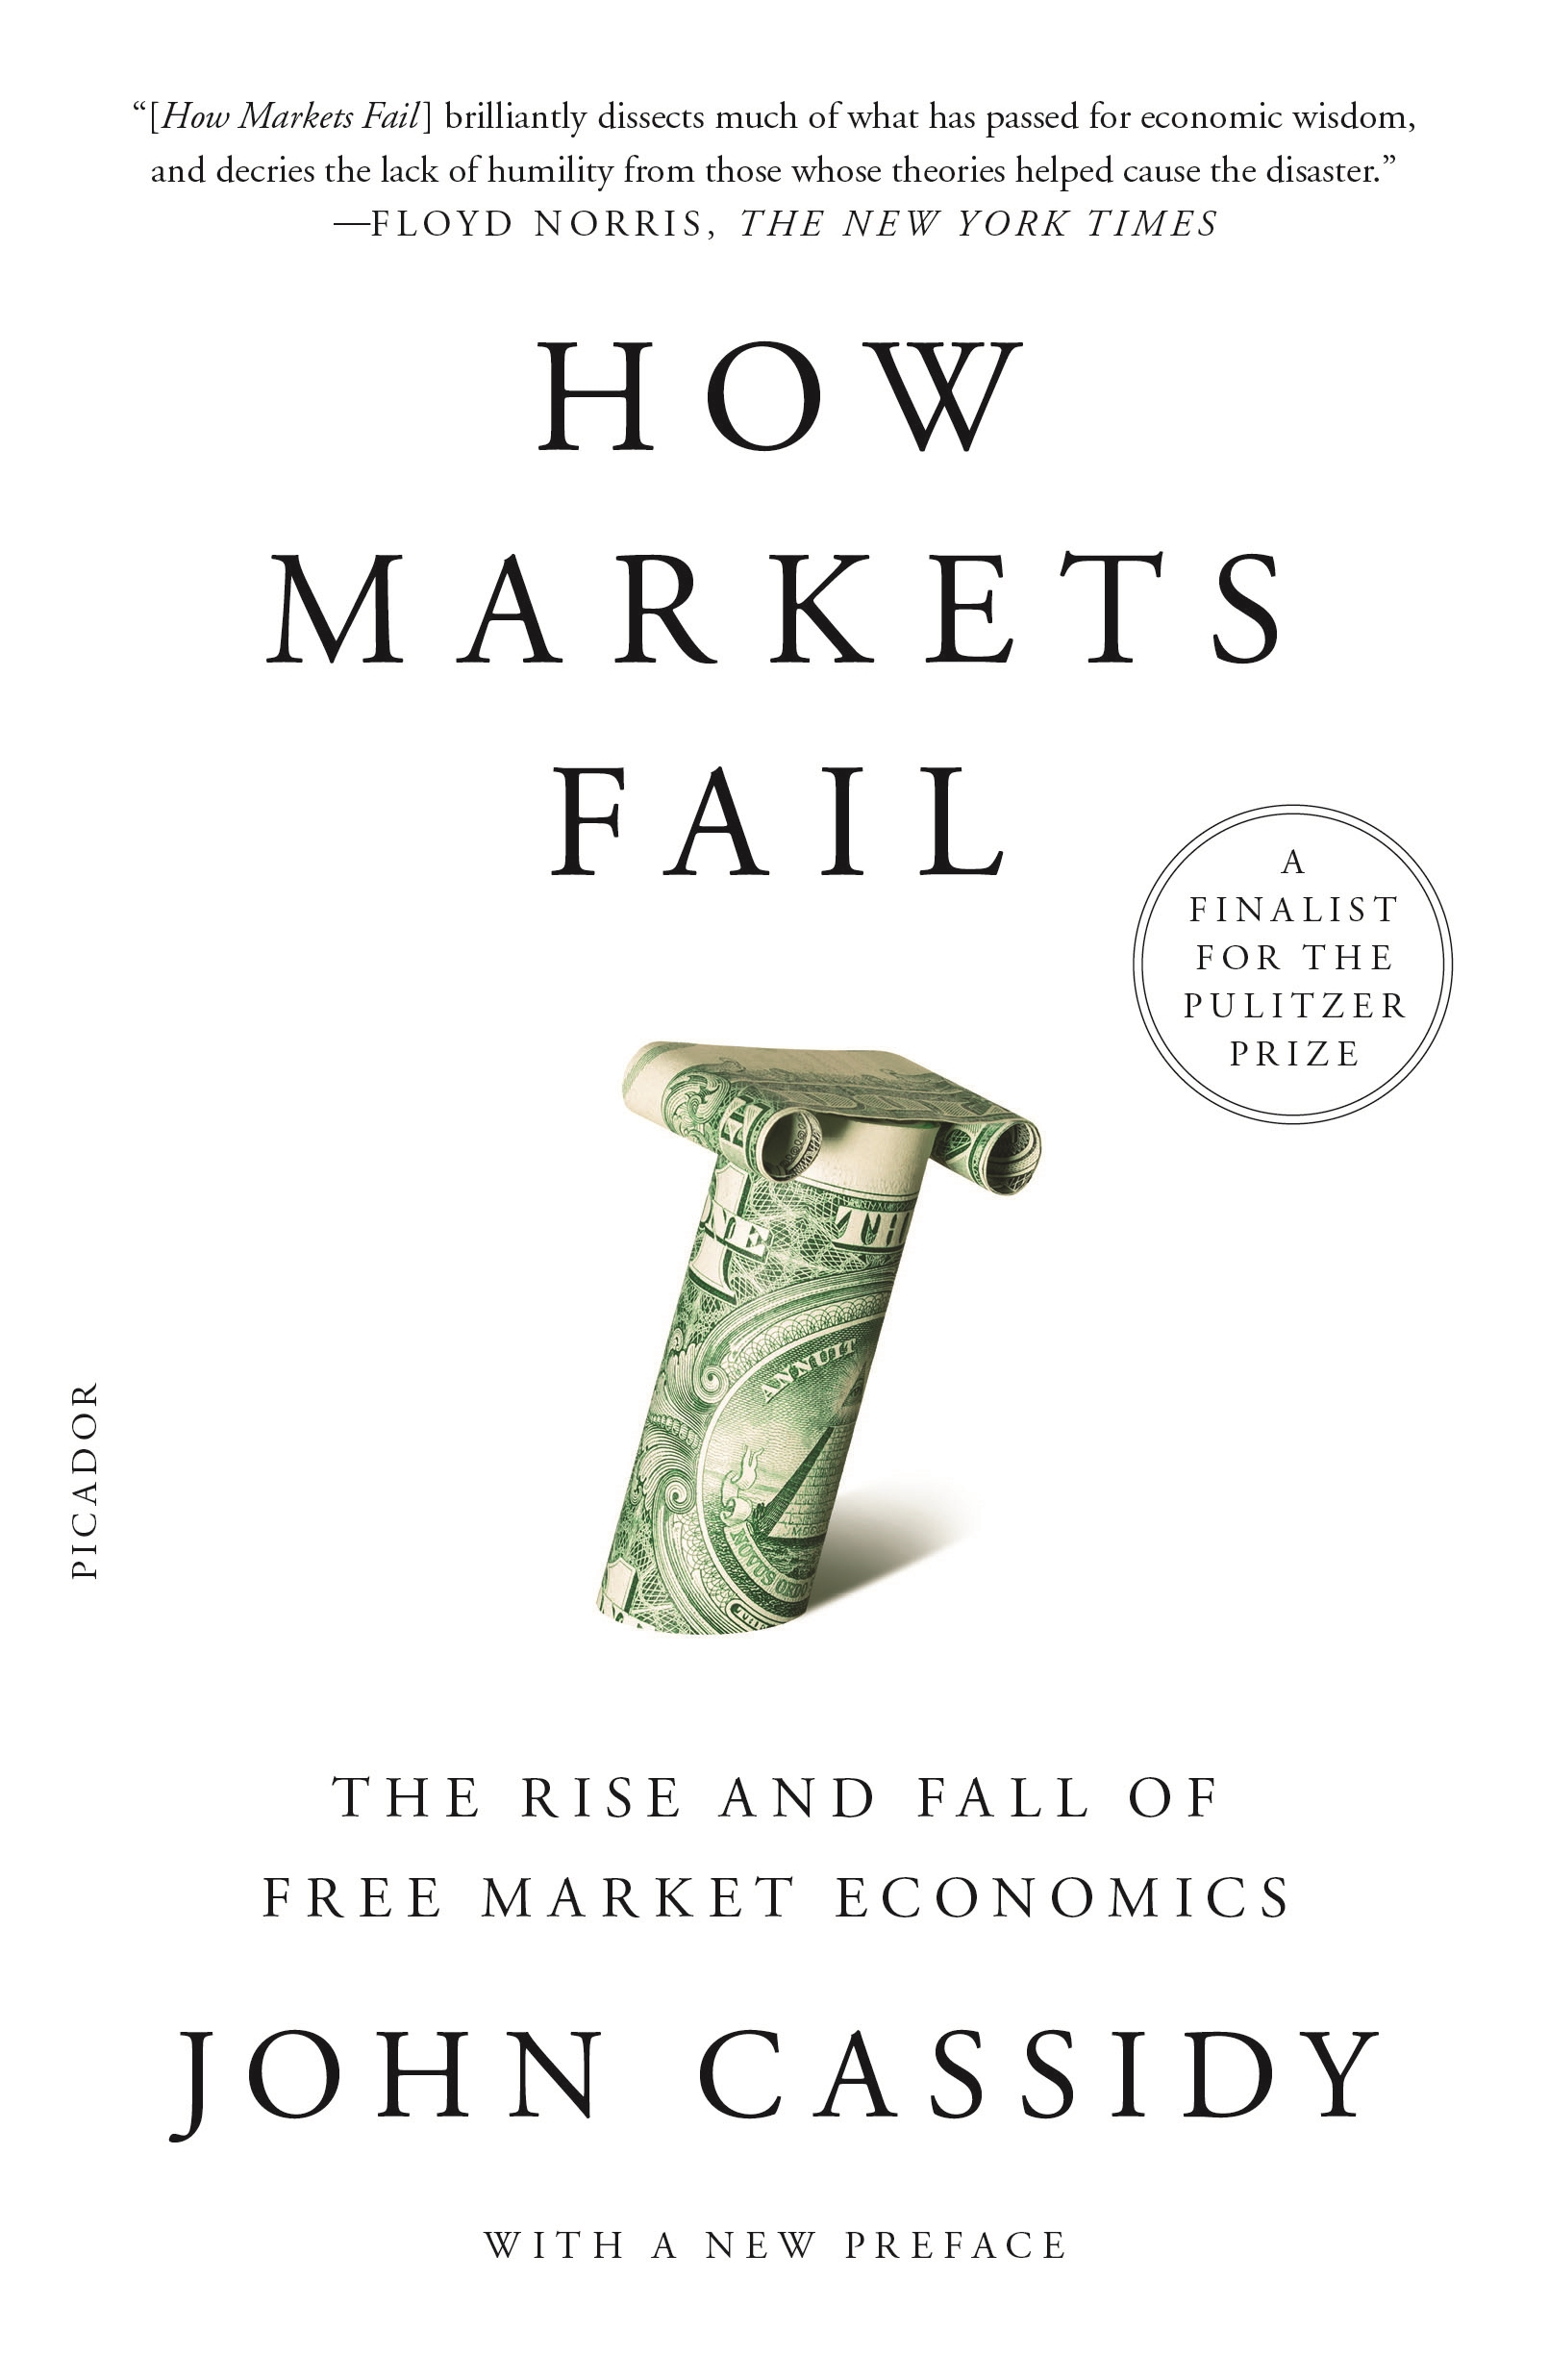 Download Ebook How Markets Fail by John Cassidy Pdf